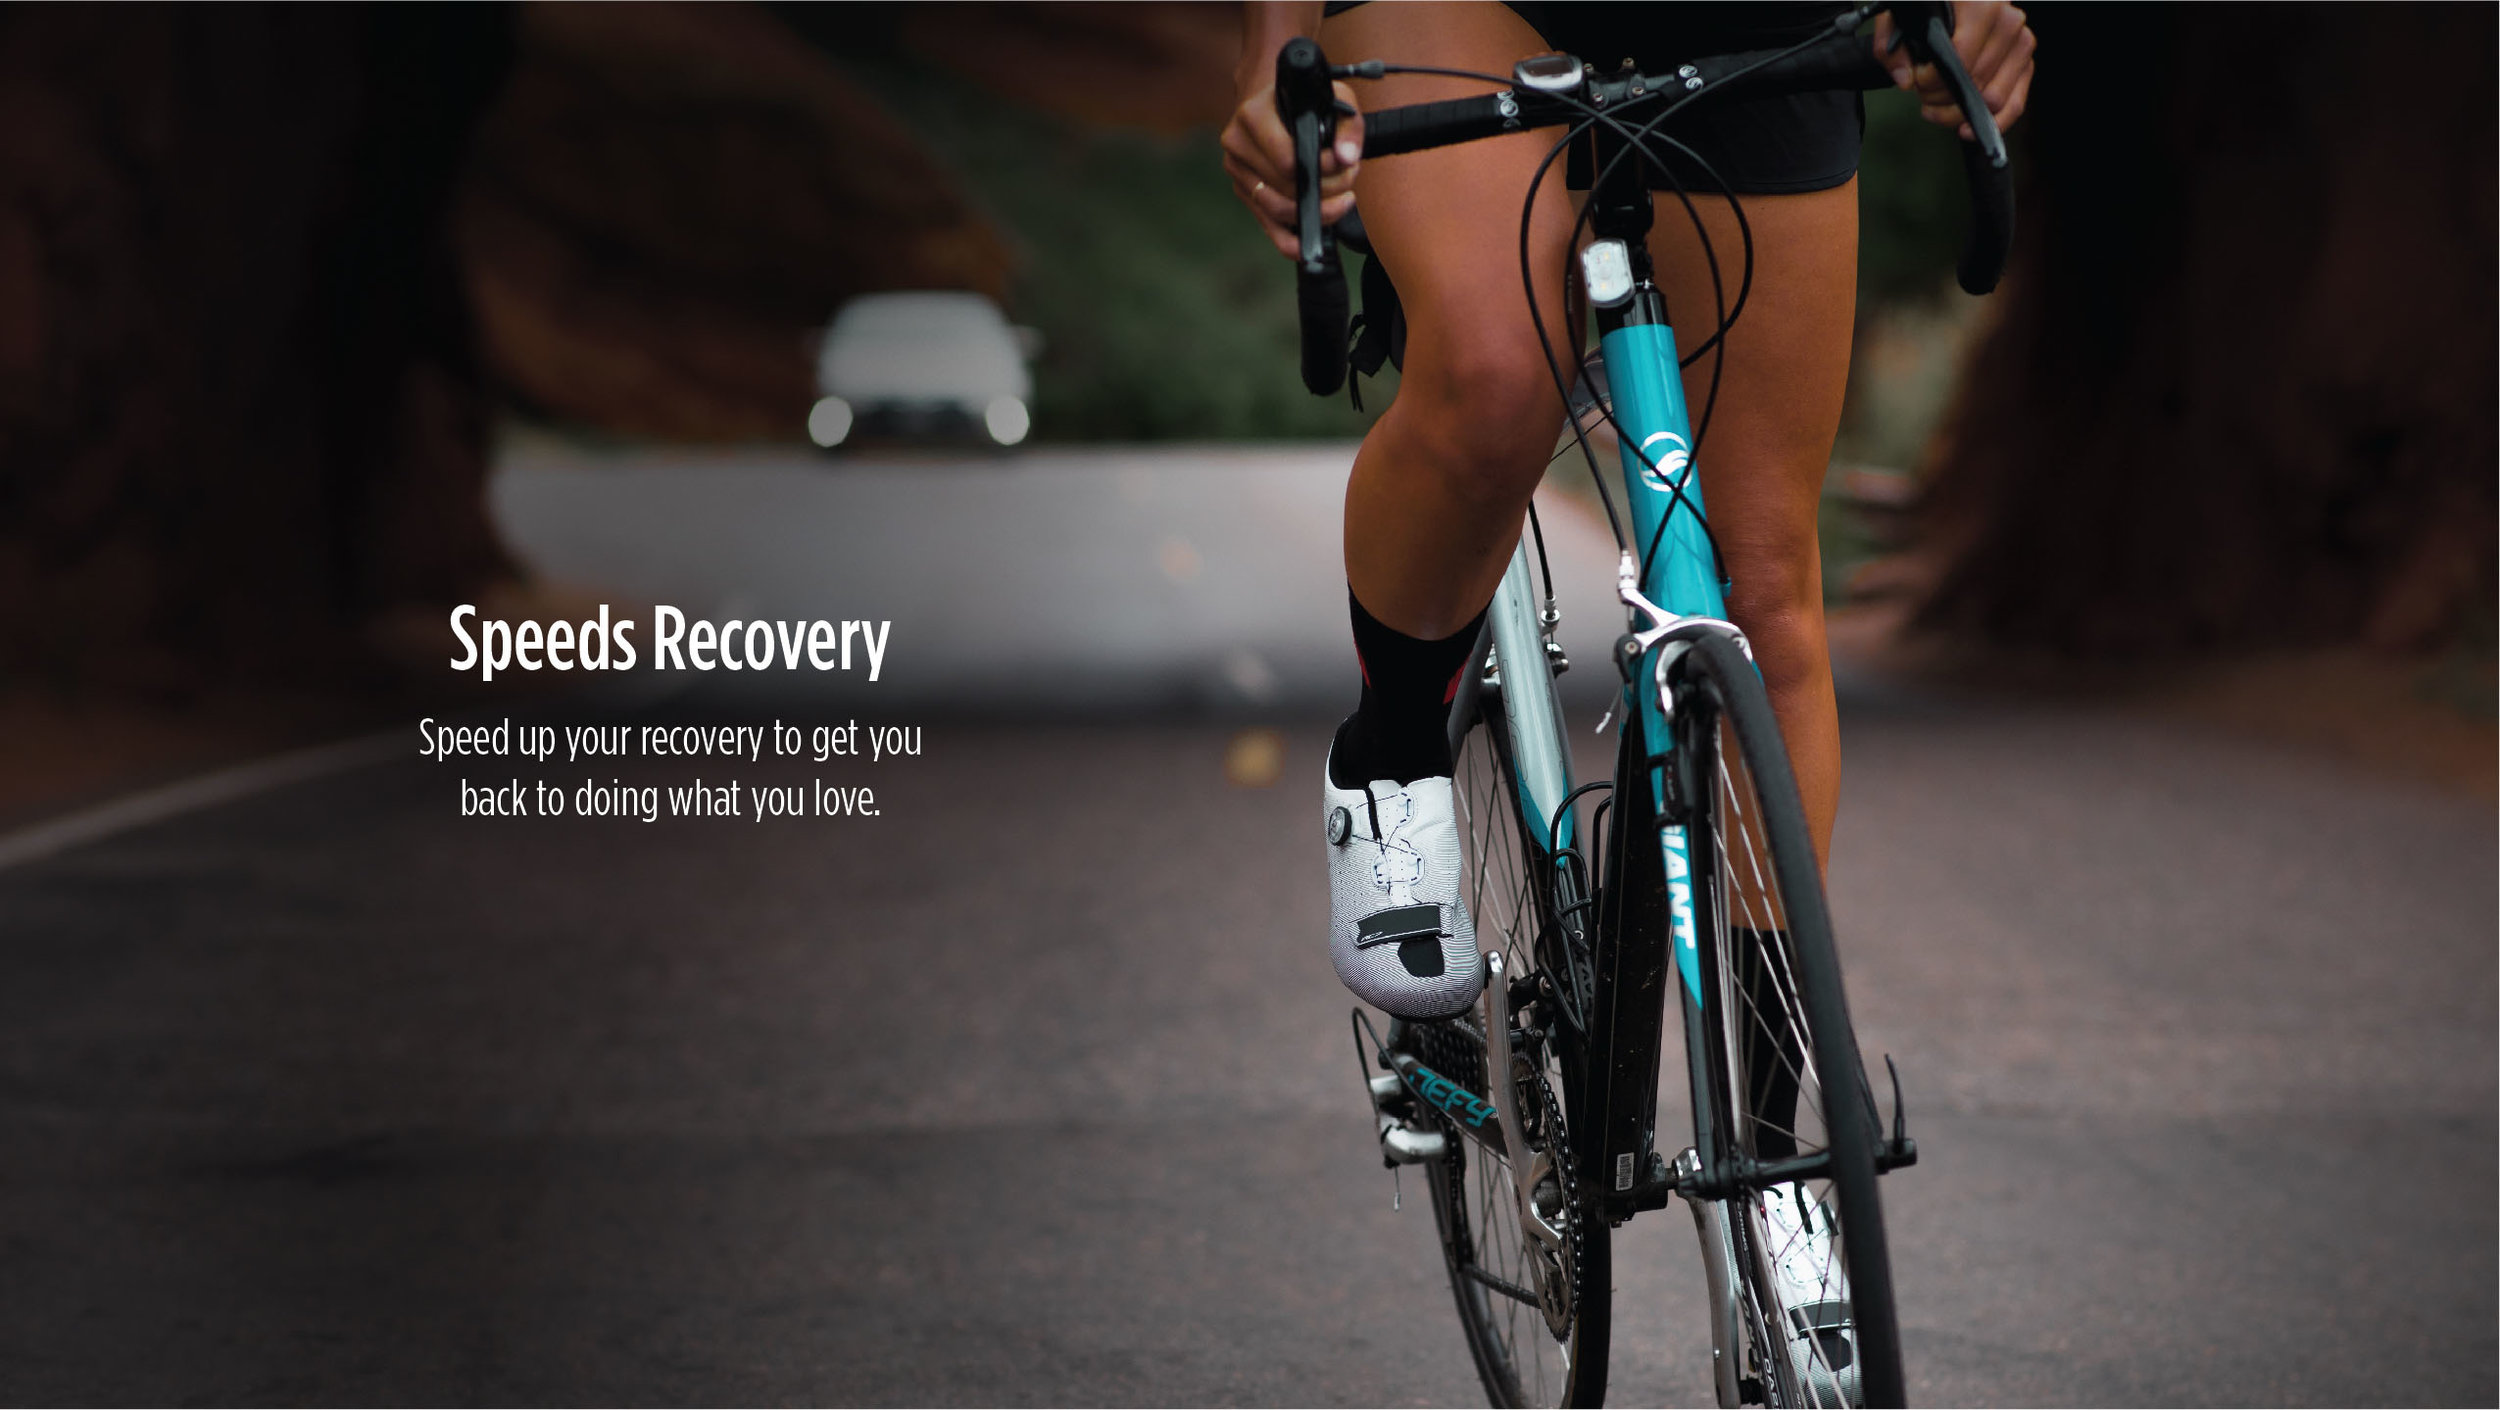 Product-Images_R8-Speeds-Recovery.jpg